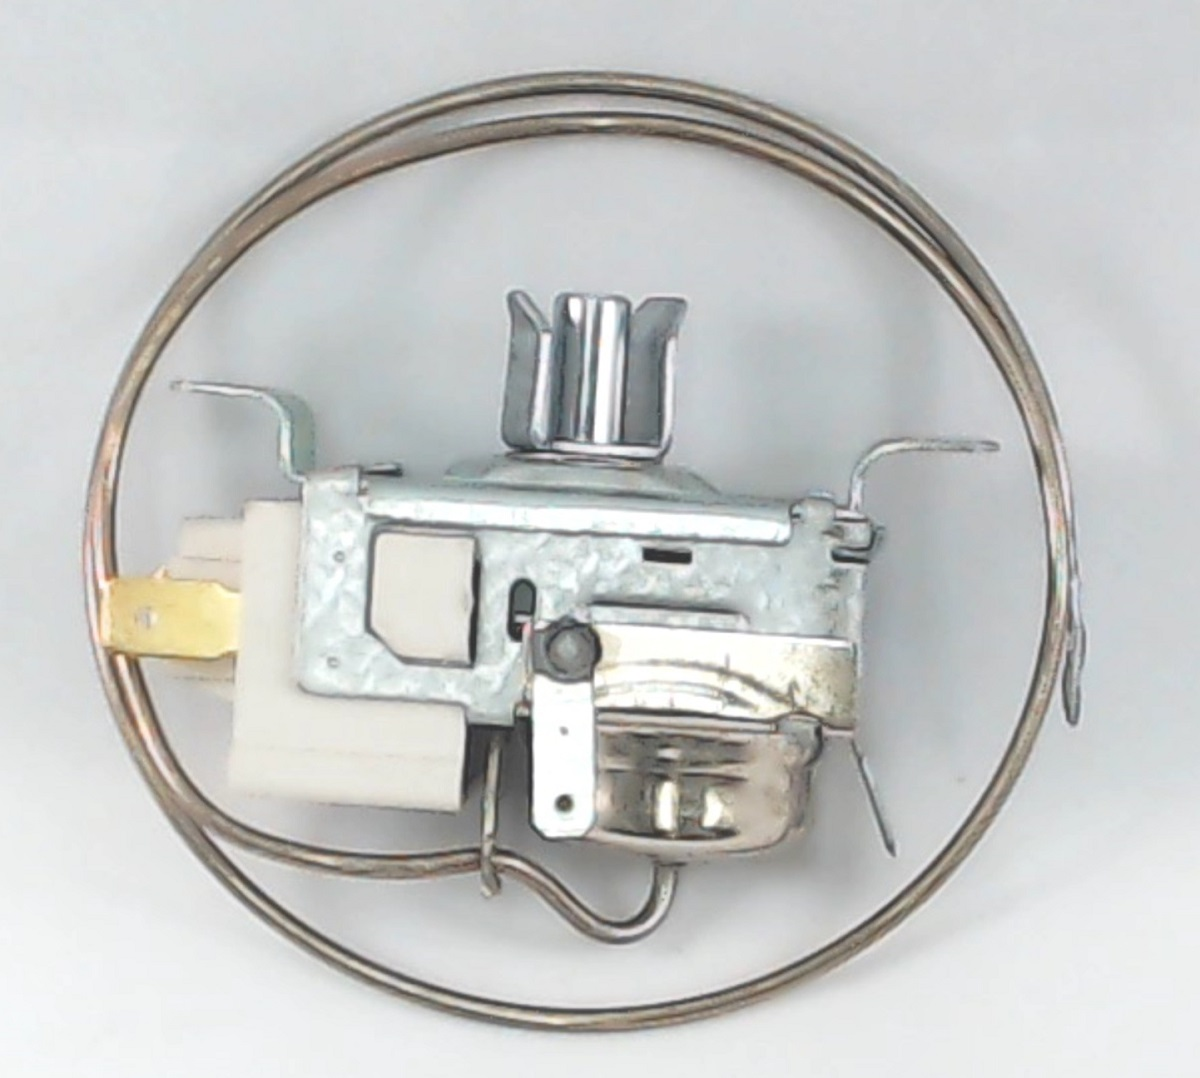 General Electric Hand Mixer Parts ~ Wr cold control for general electric